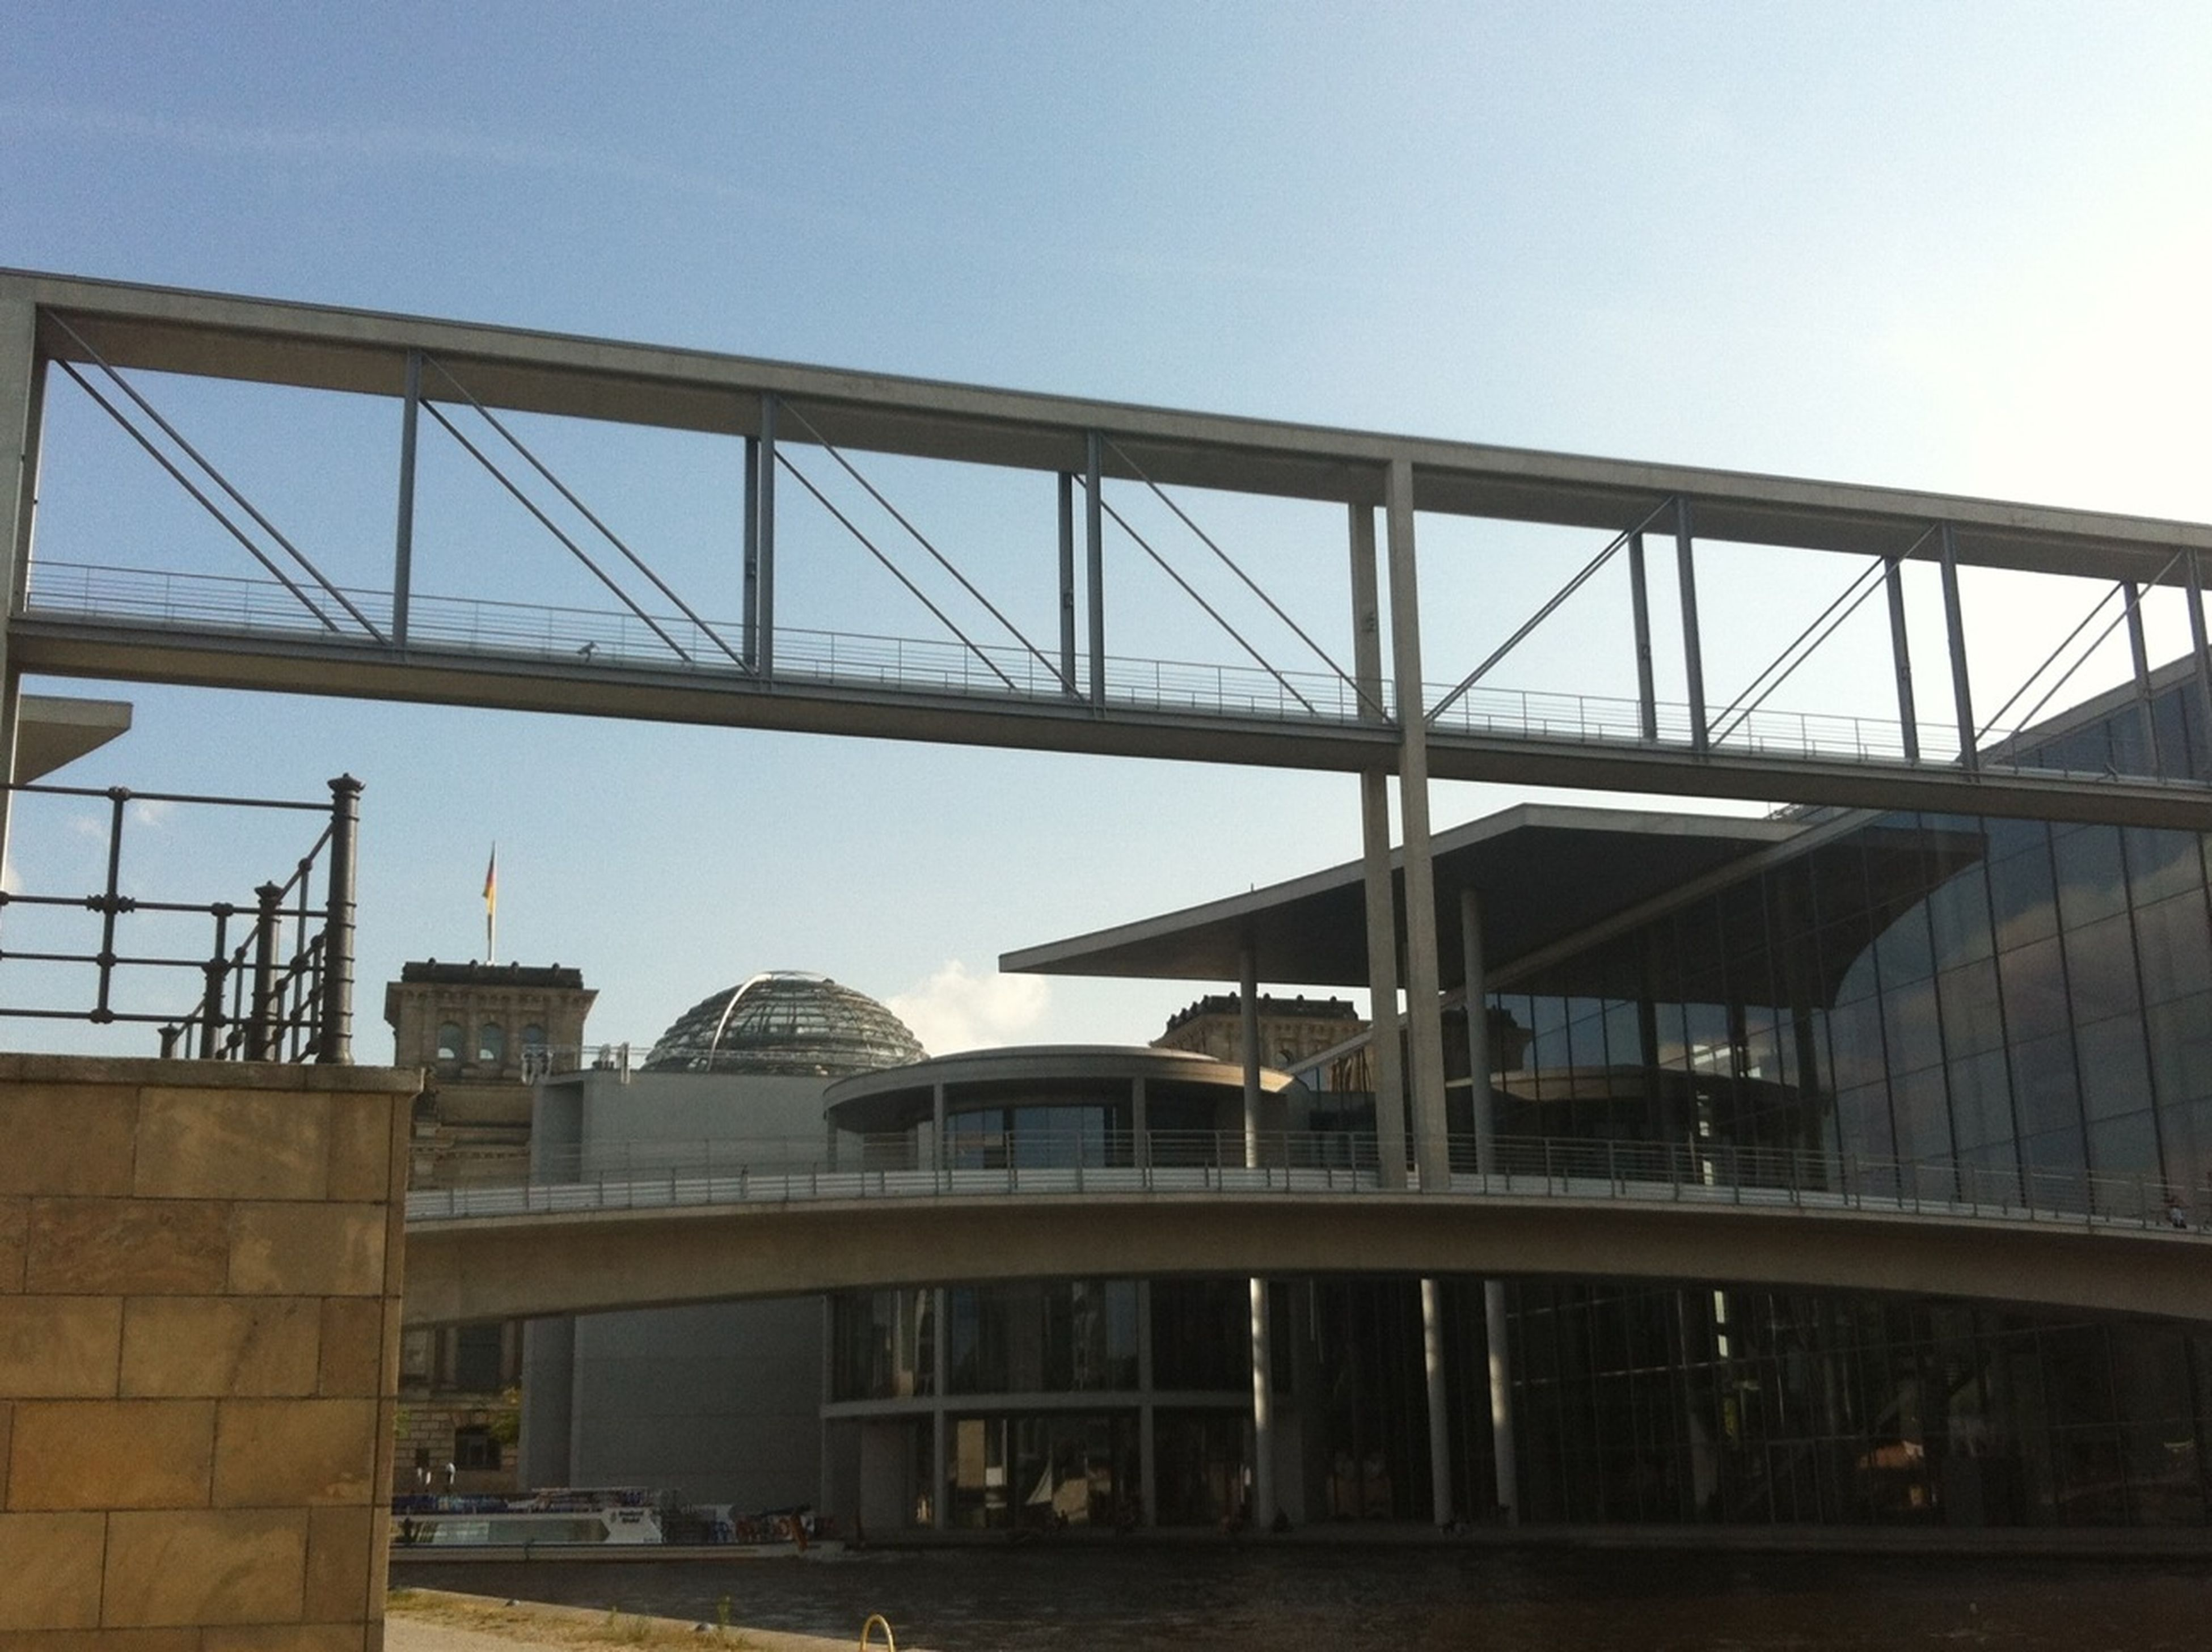 architecture, built structure, building exterior, clear sky, bridge - man made structure, city, connection, low angle view, copy space, engineering, bridge, river, sky, building, outdoors, day, no people, railing, modern, residential building